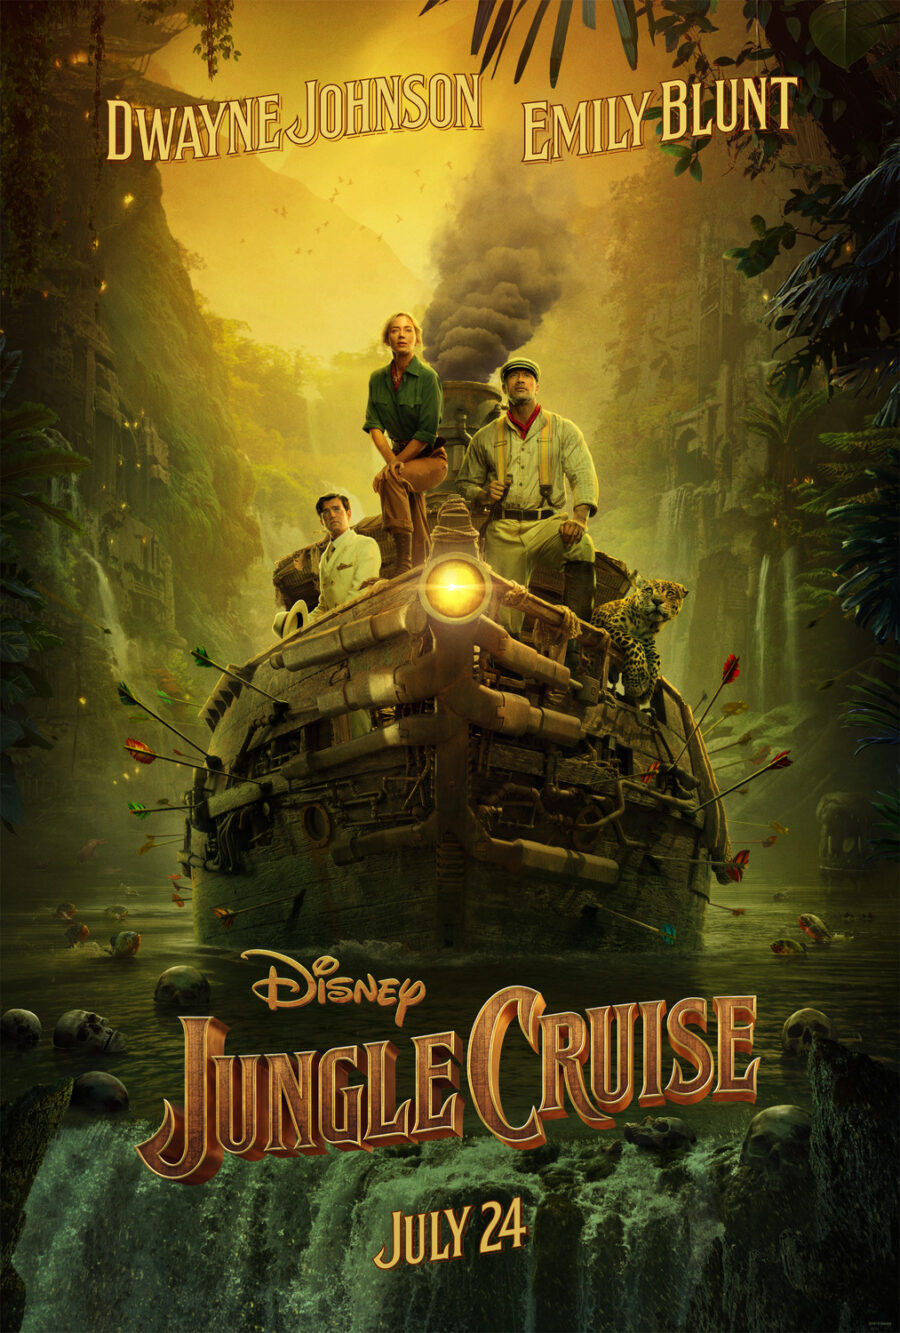 Disney's Jungle Cruise